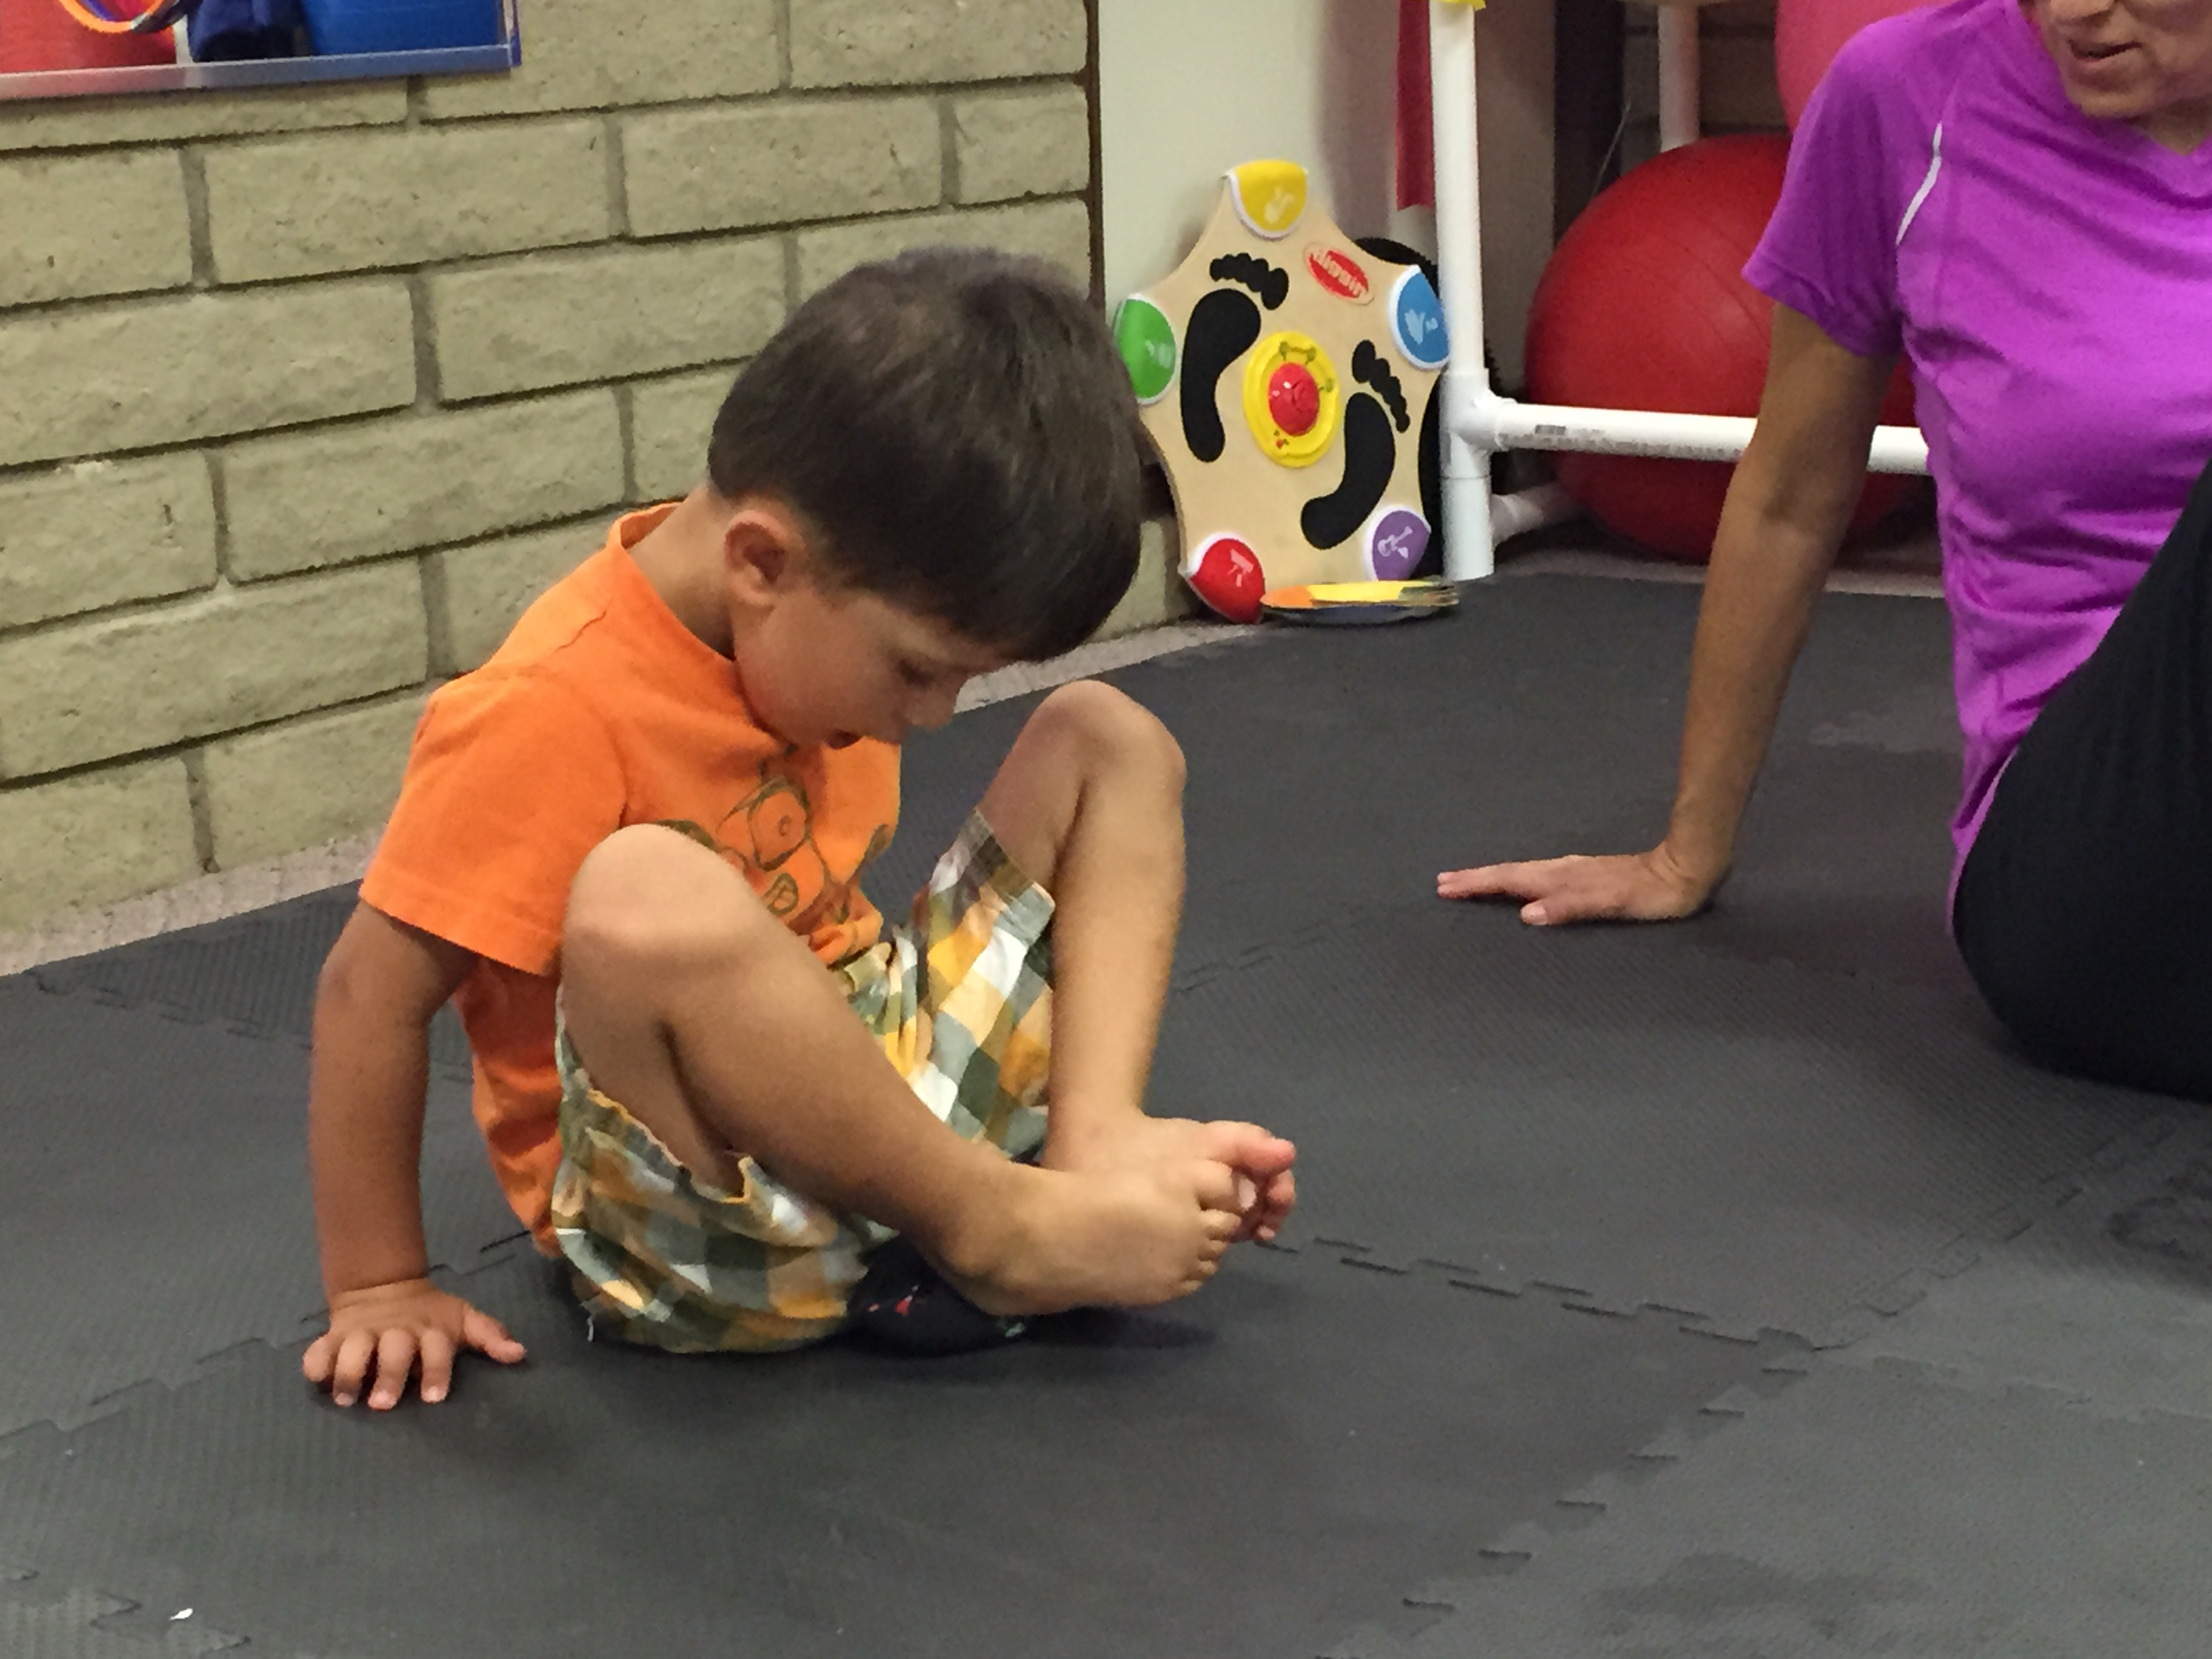 Kid picking up item with feet